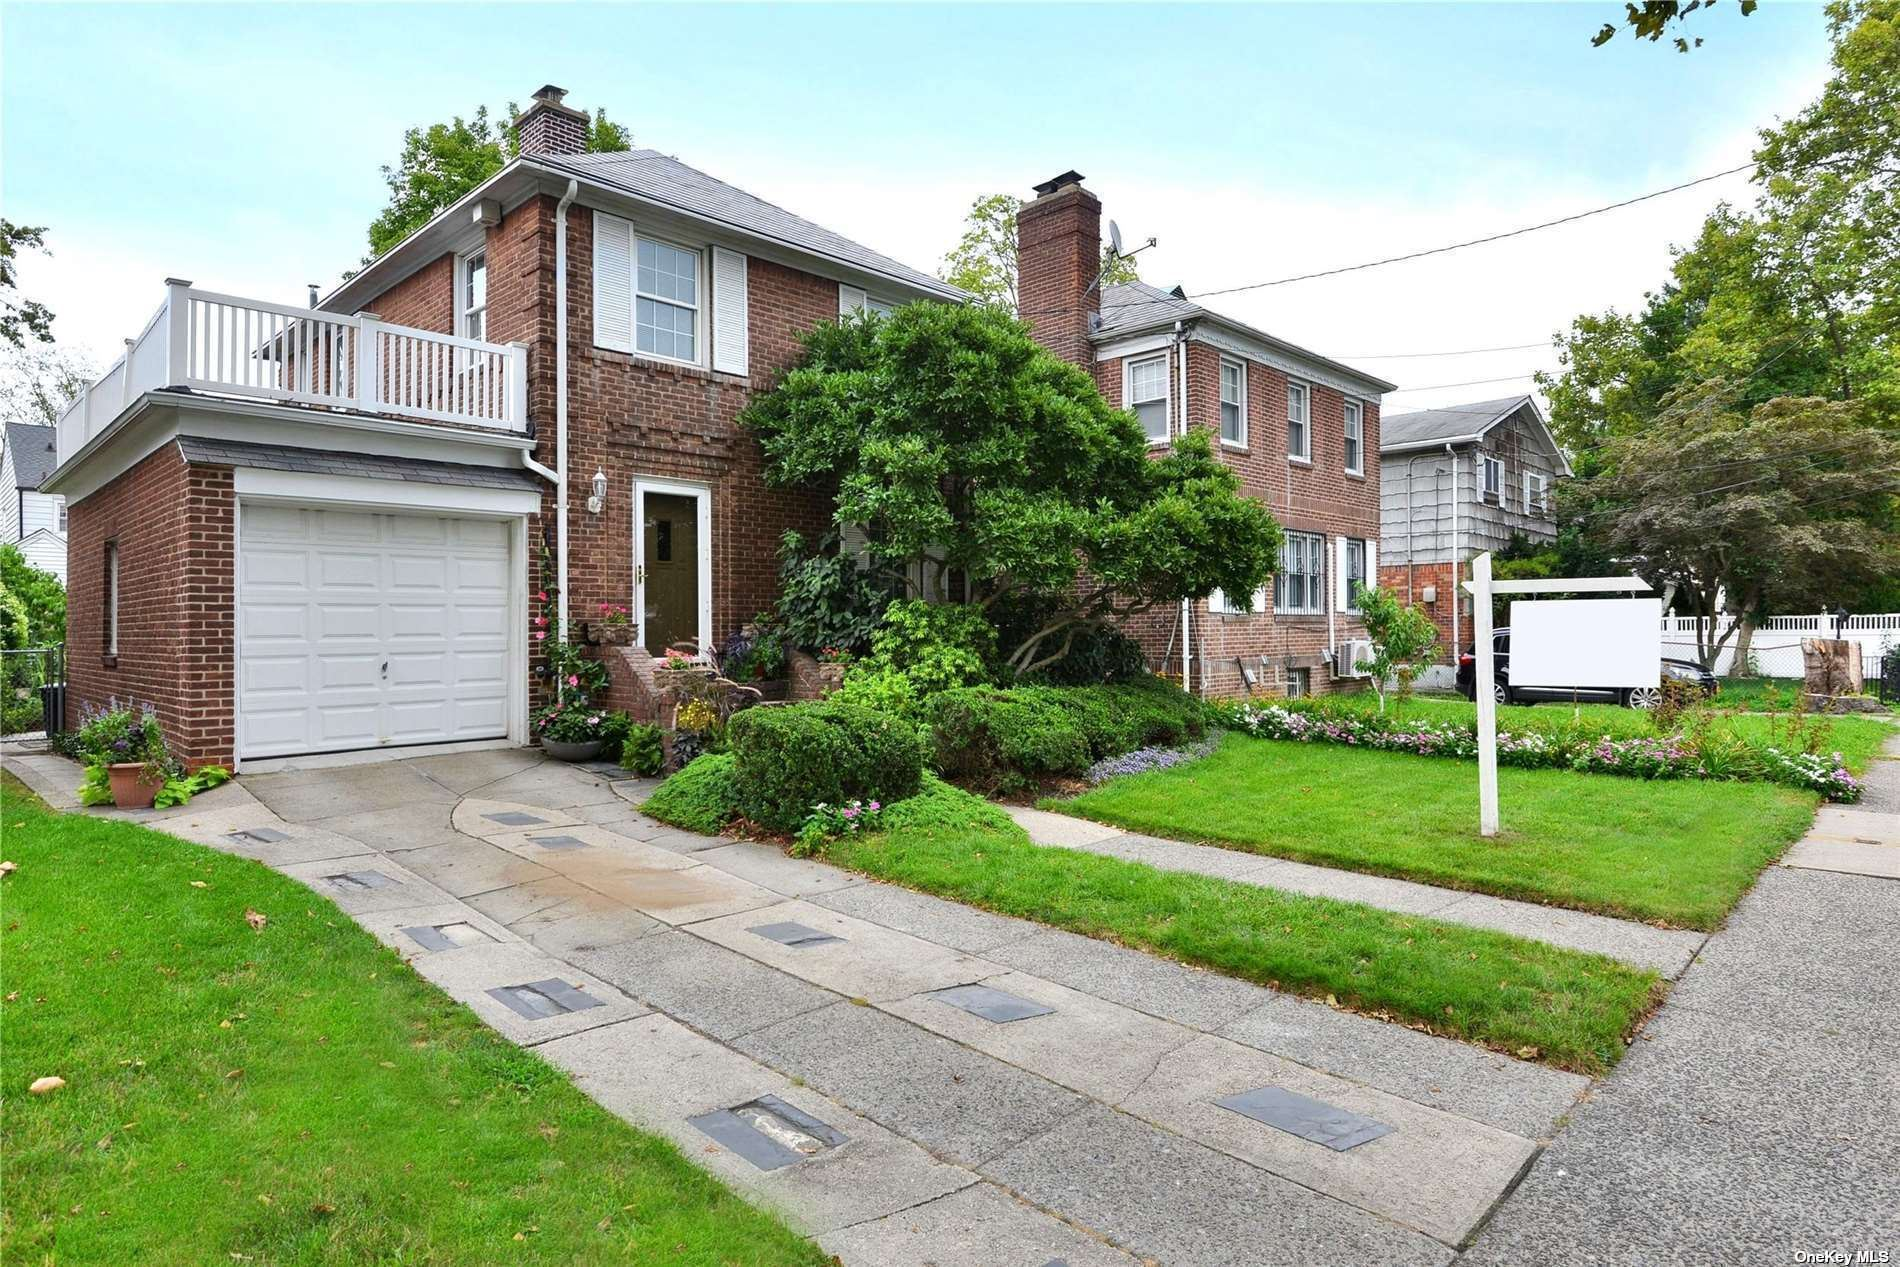 36-29 Clearview Expressway, Bayside, NY 11361 - MLS#: 3317544